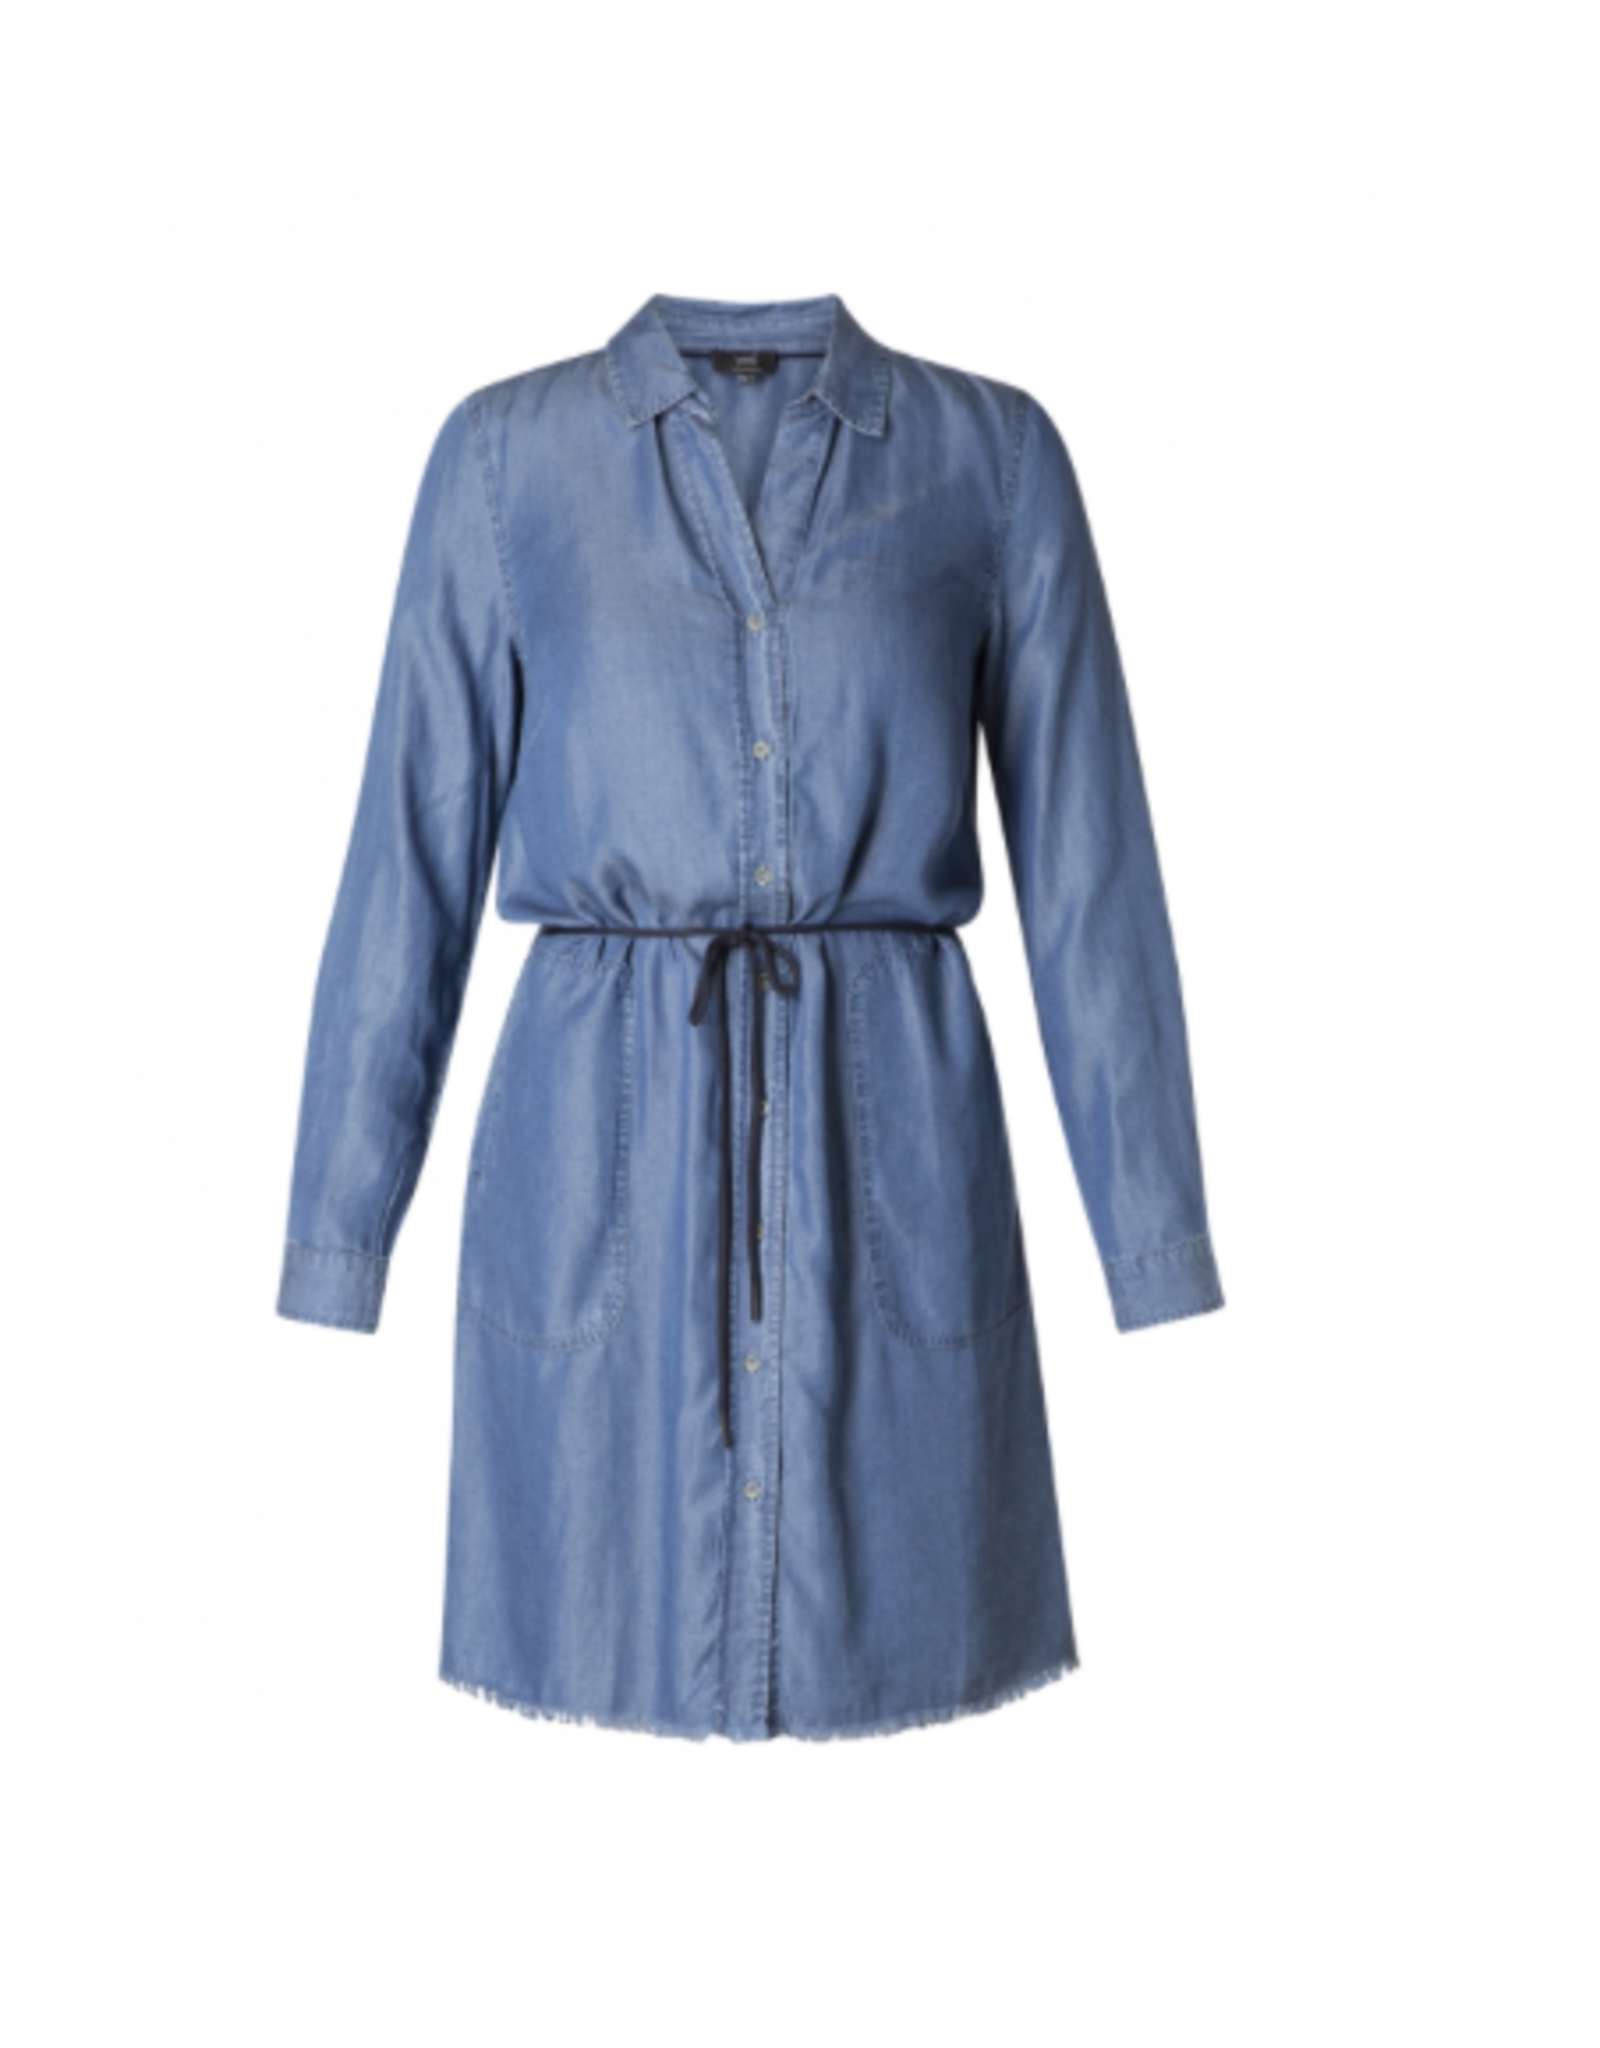 Yest Yest - Chambray dress with waist tie